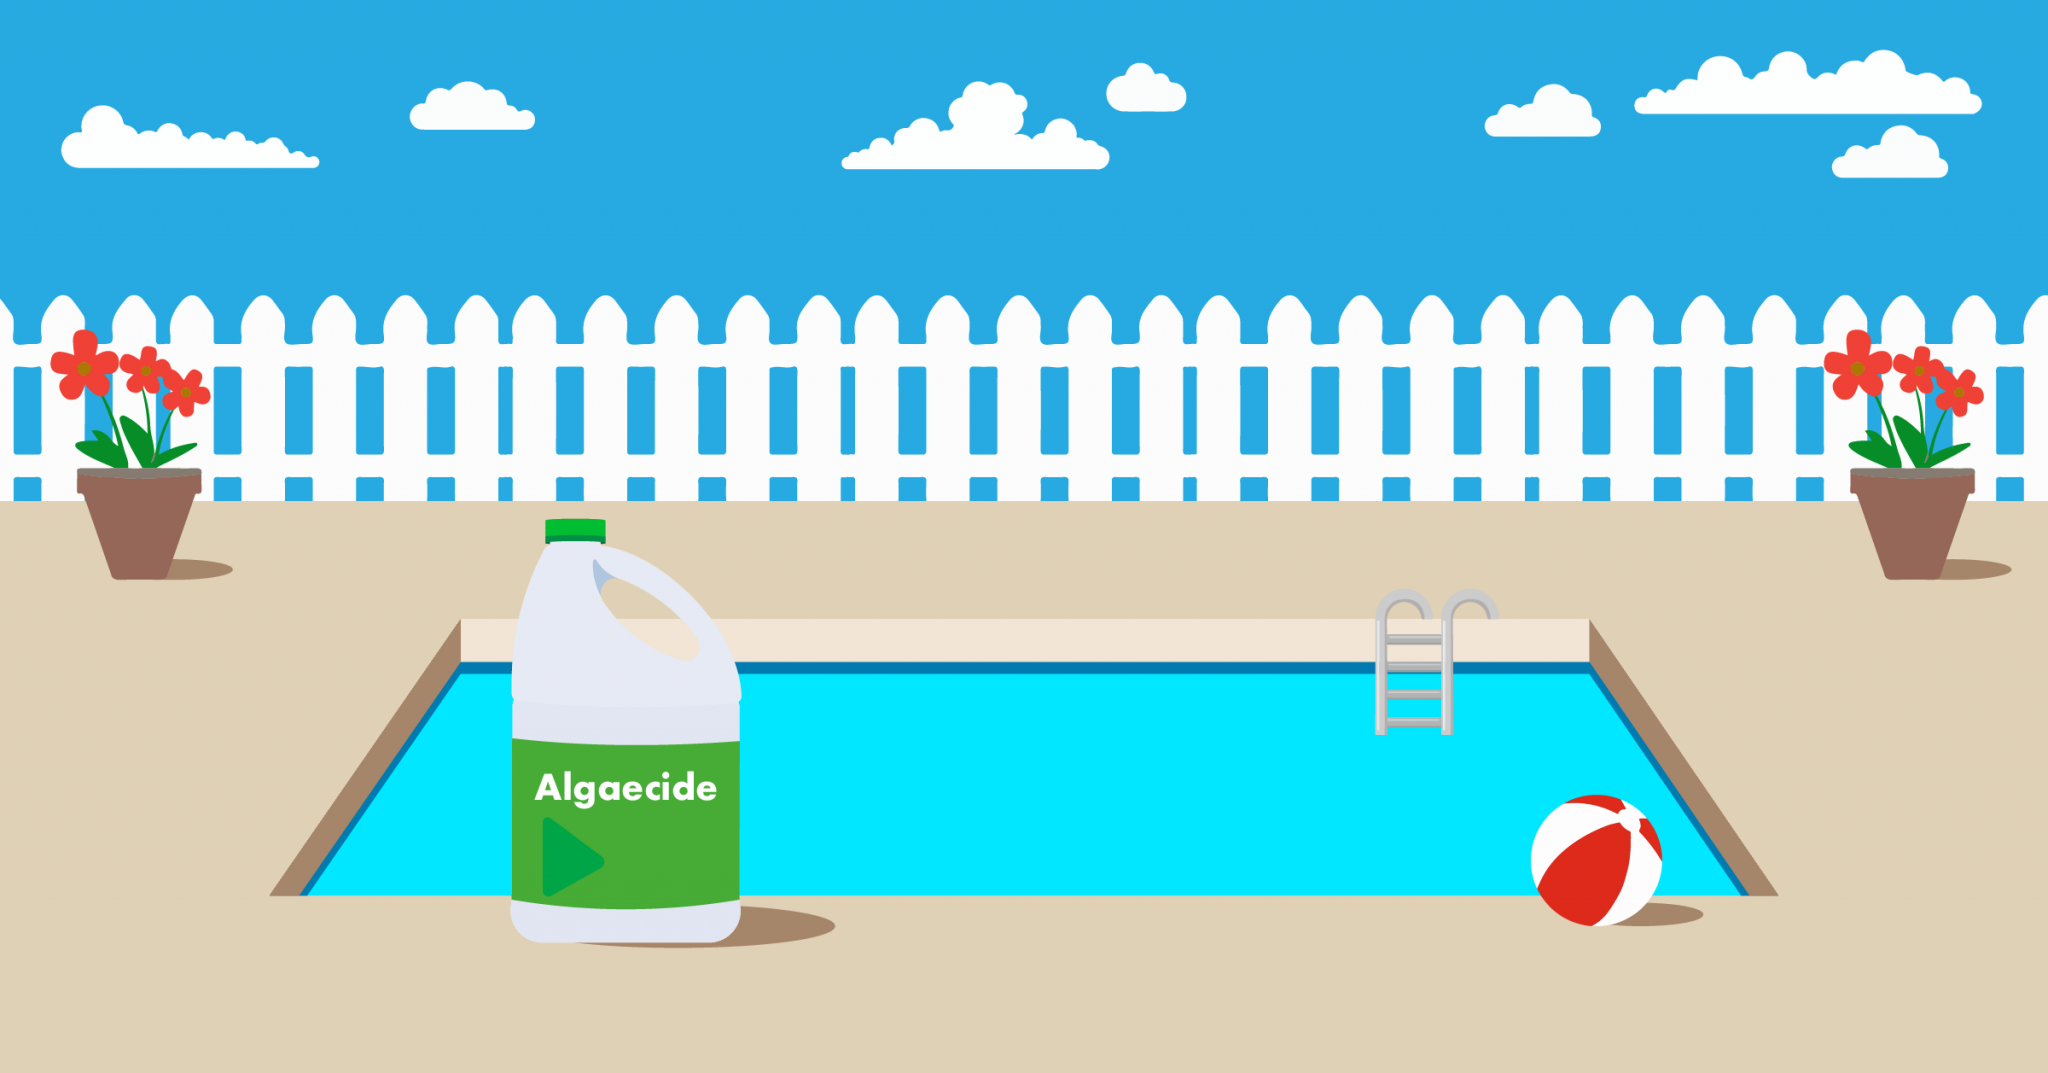 How Long to Wait to Add Algaecide After Shock